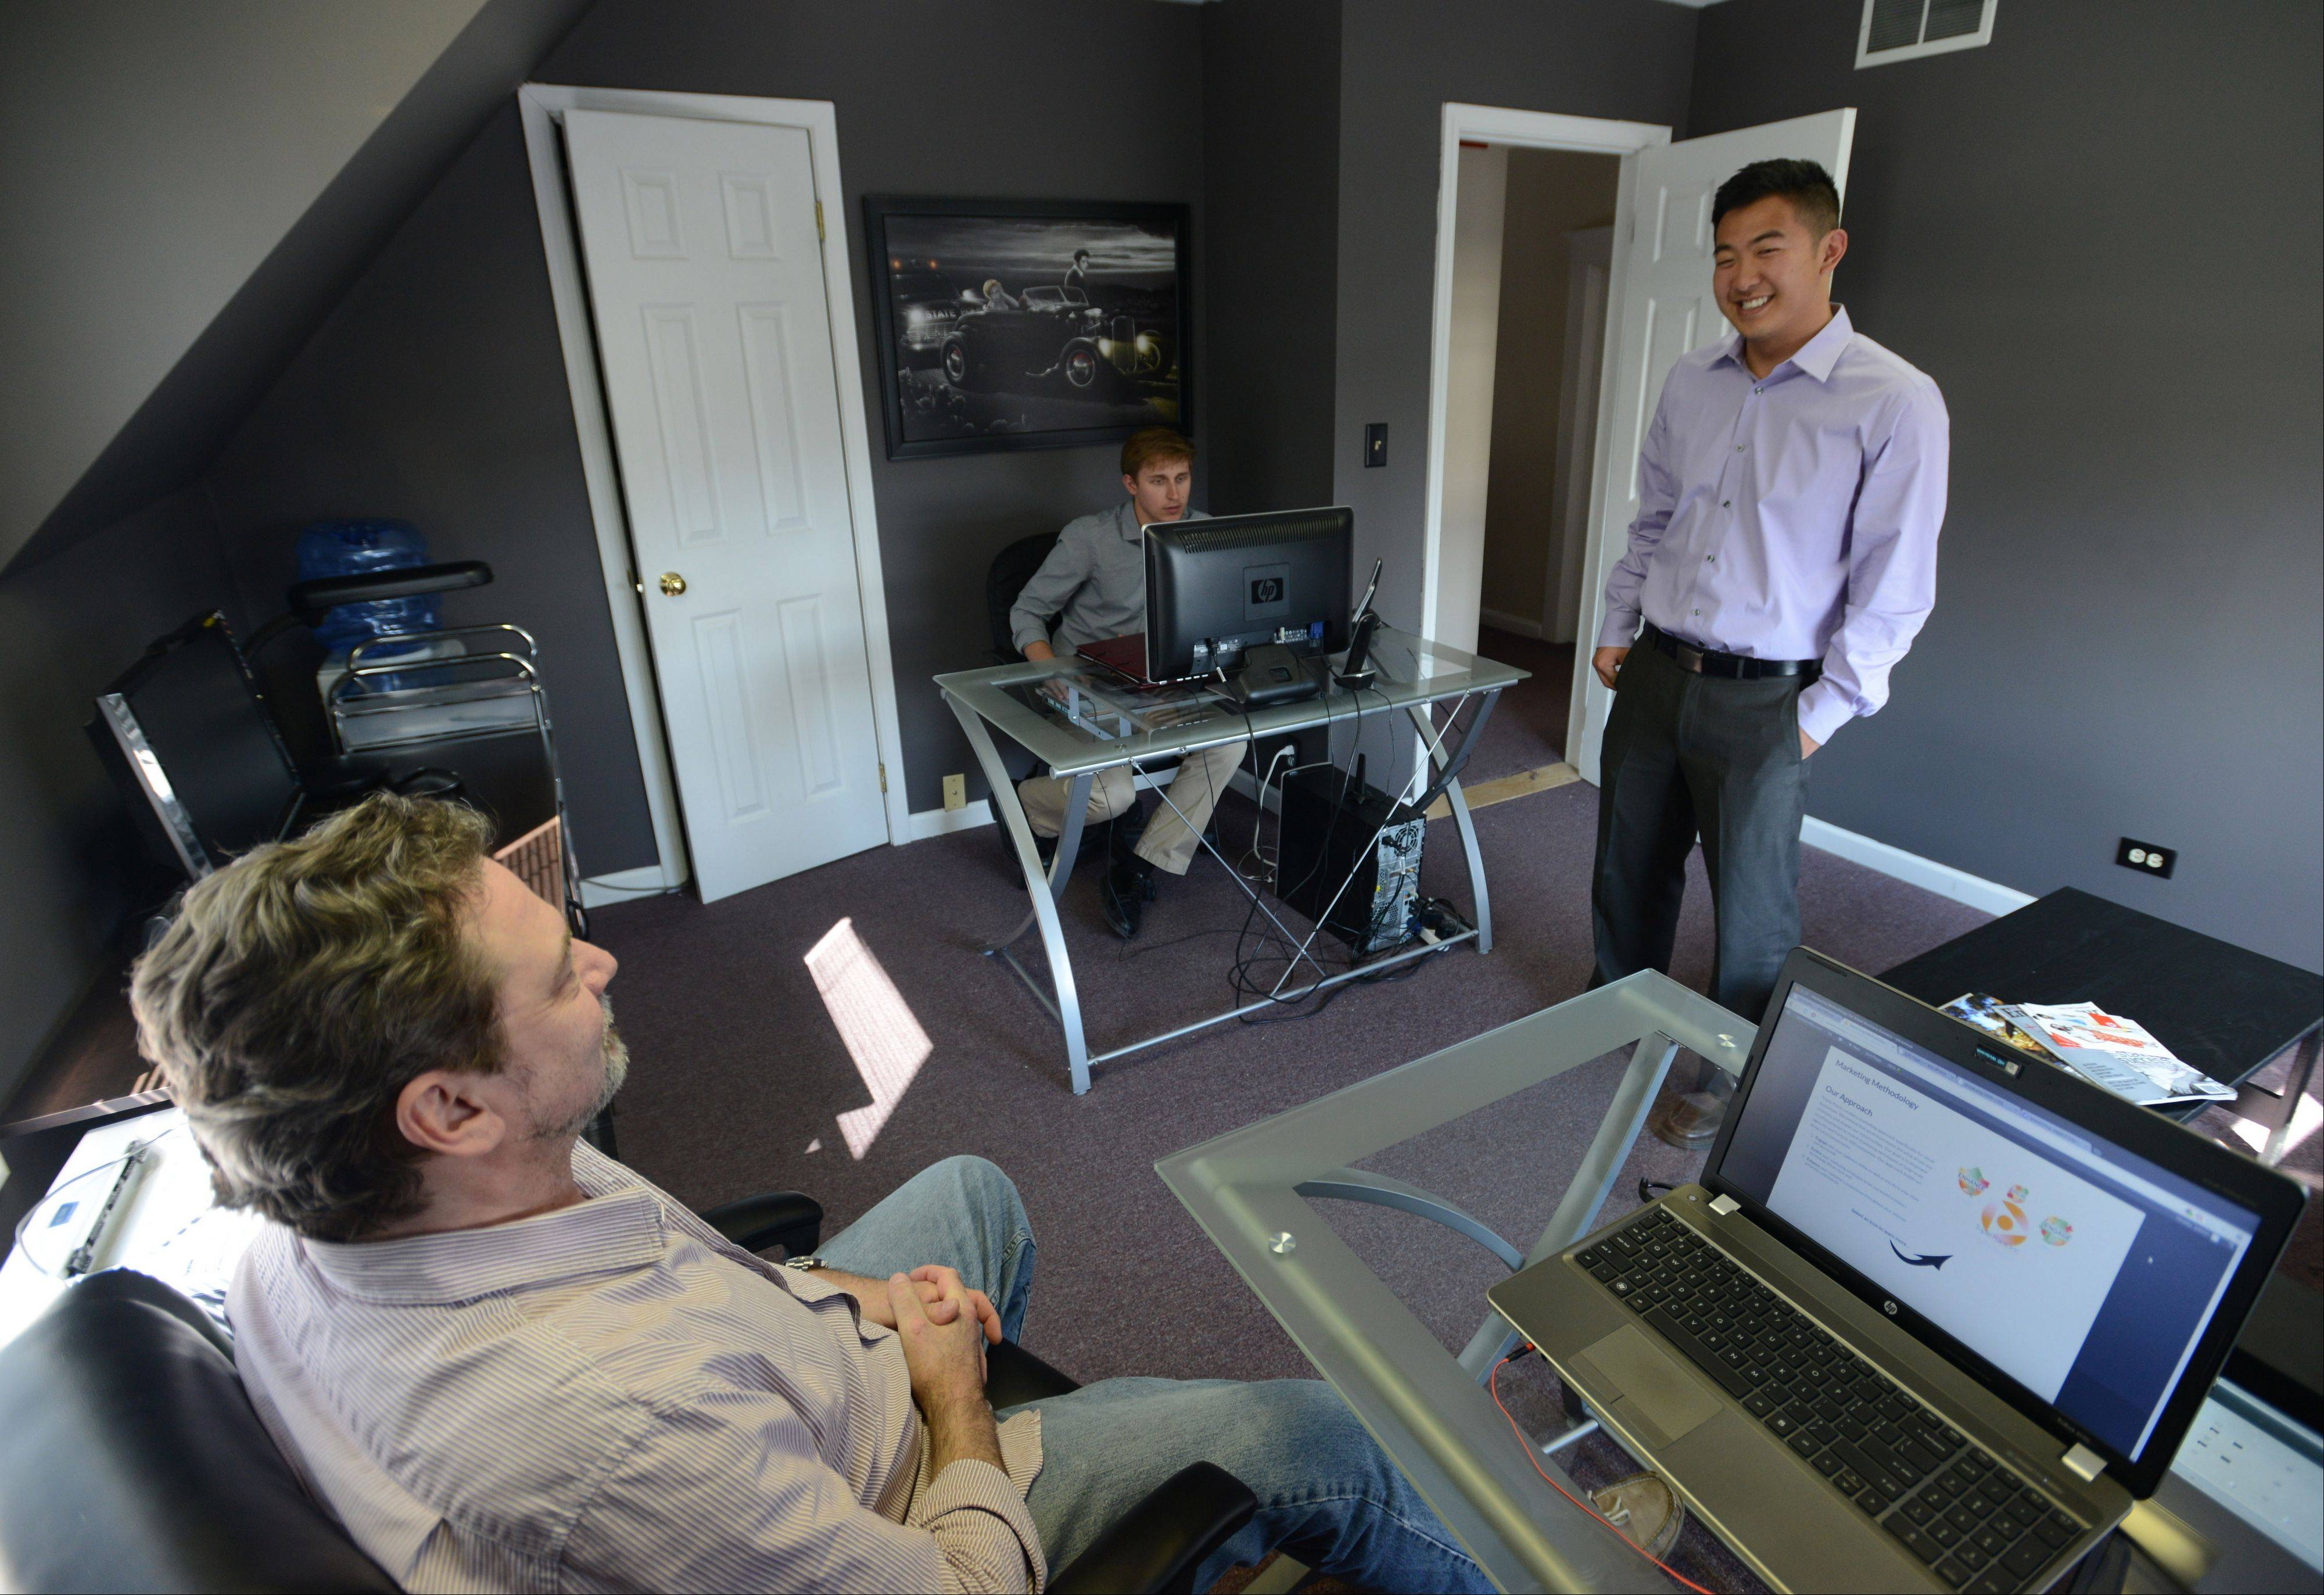 Wilbur You, 22, talks with Youtech technology director Frank Hilgers.